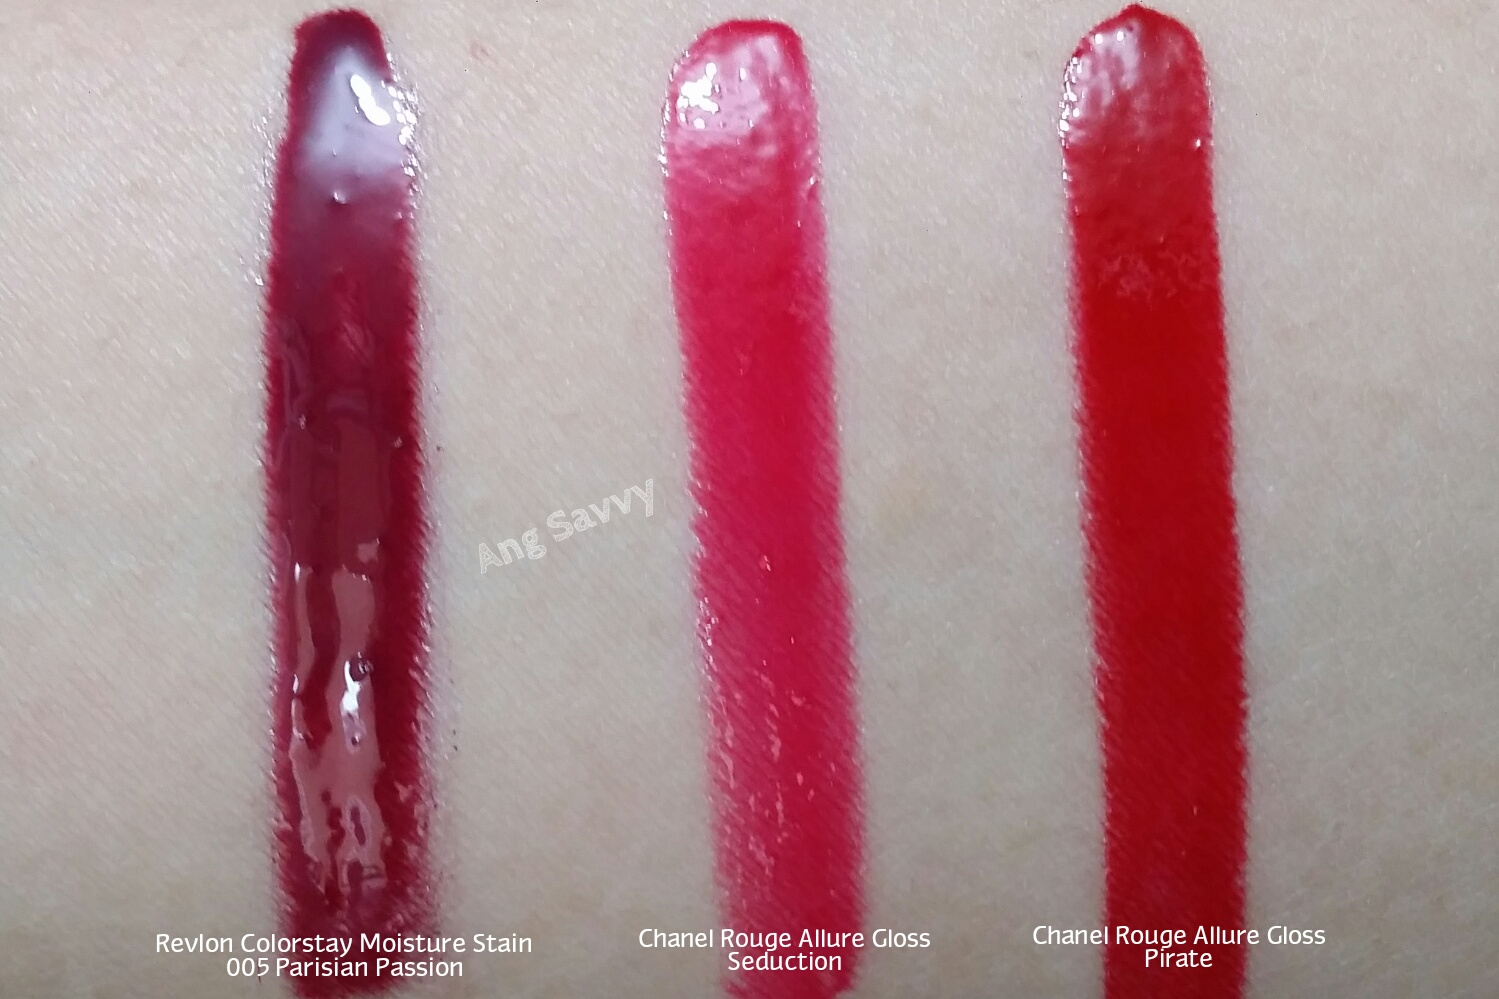 Revlon Colorstay Moisture Stains in 005 Parisian Passion Swatch